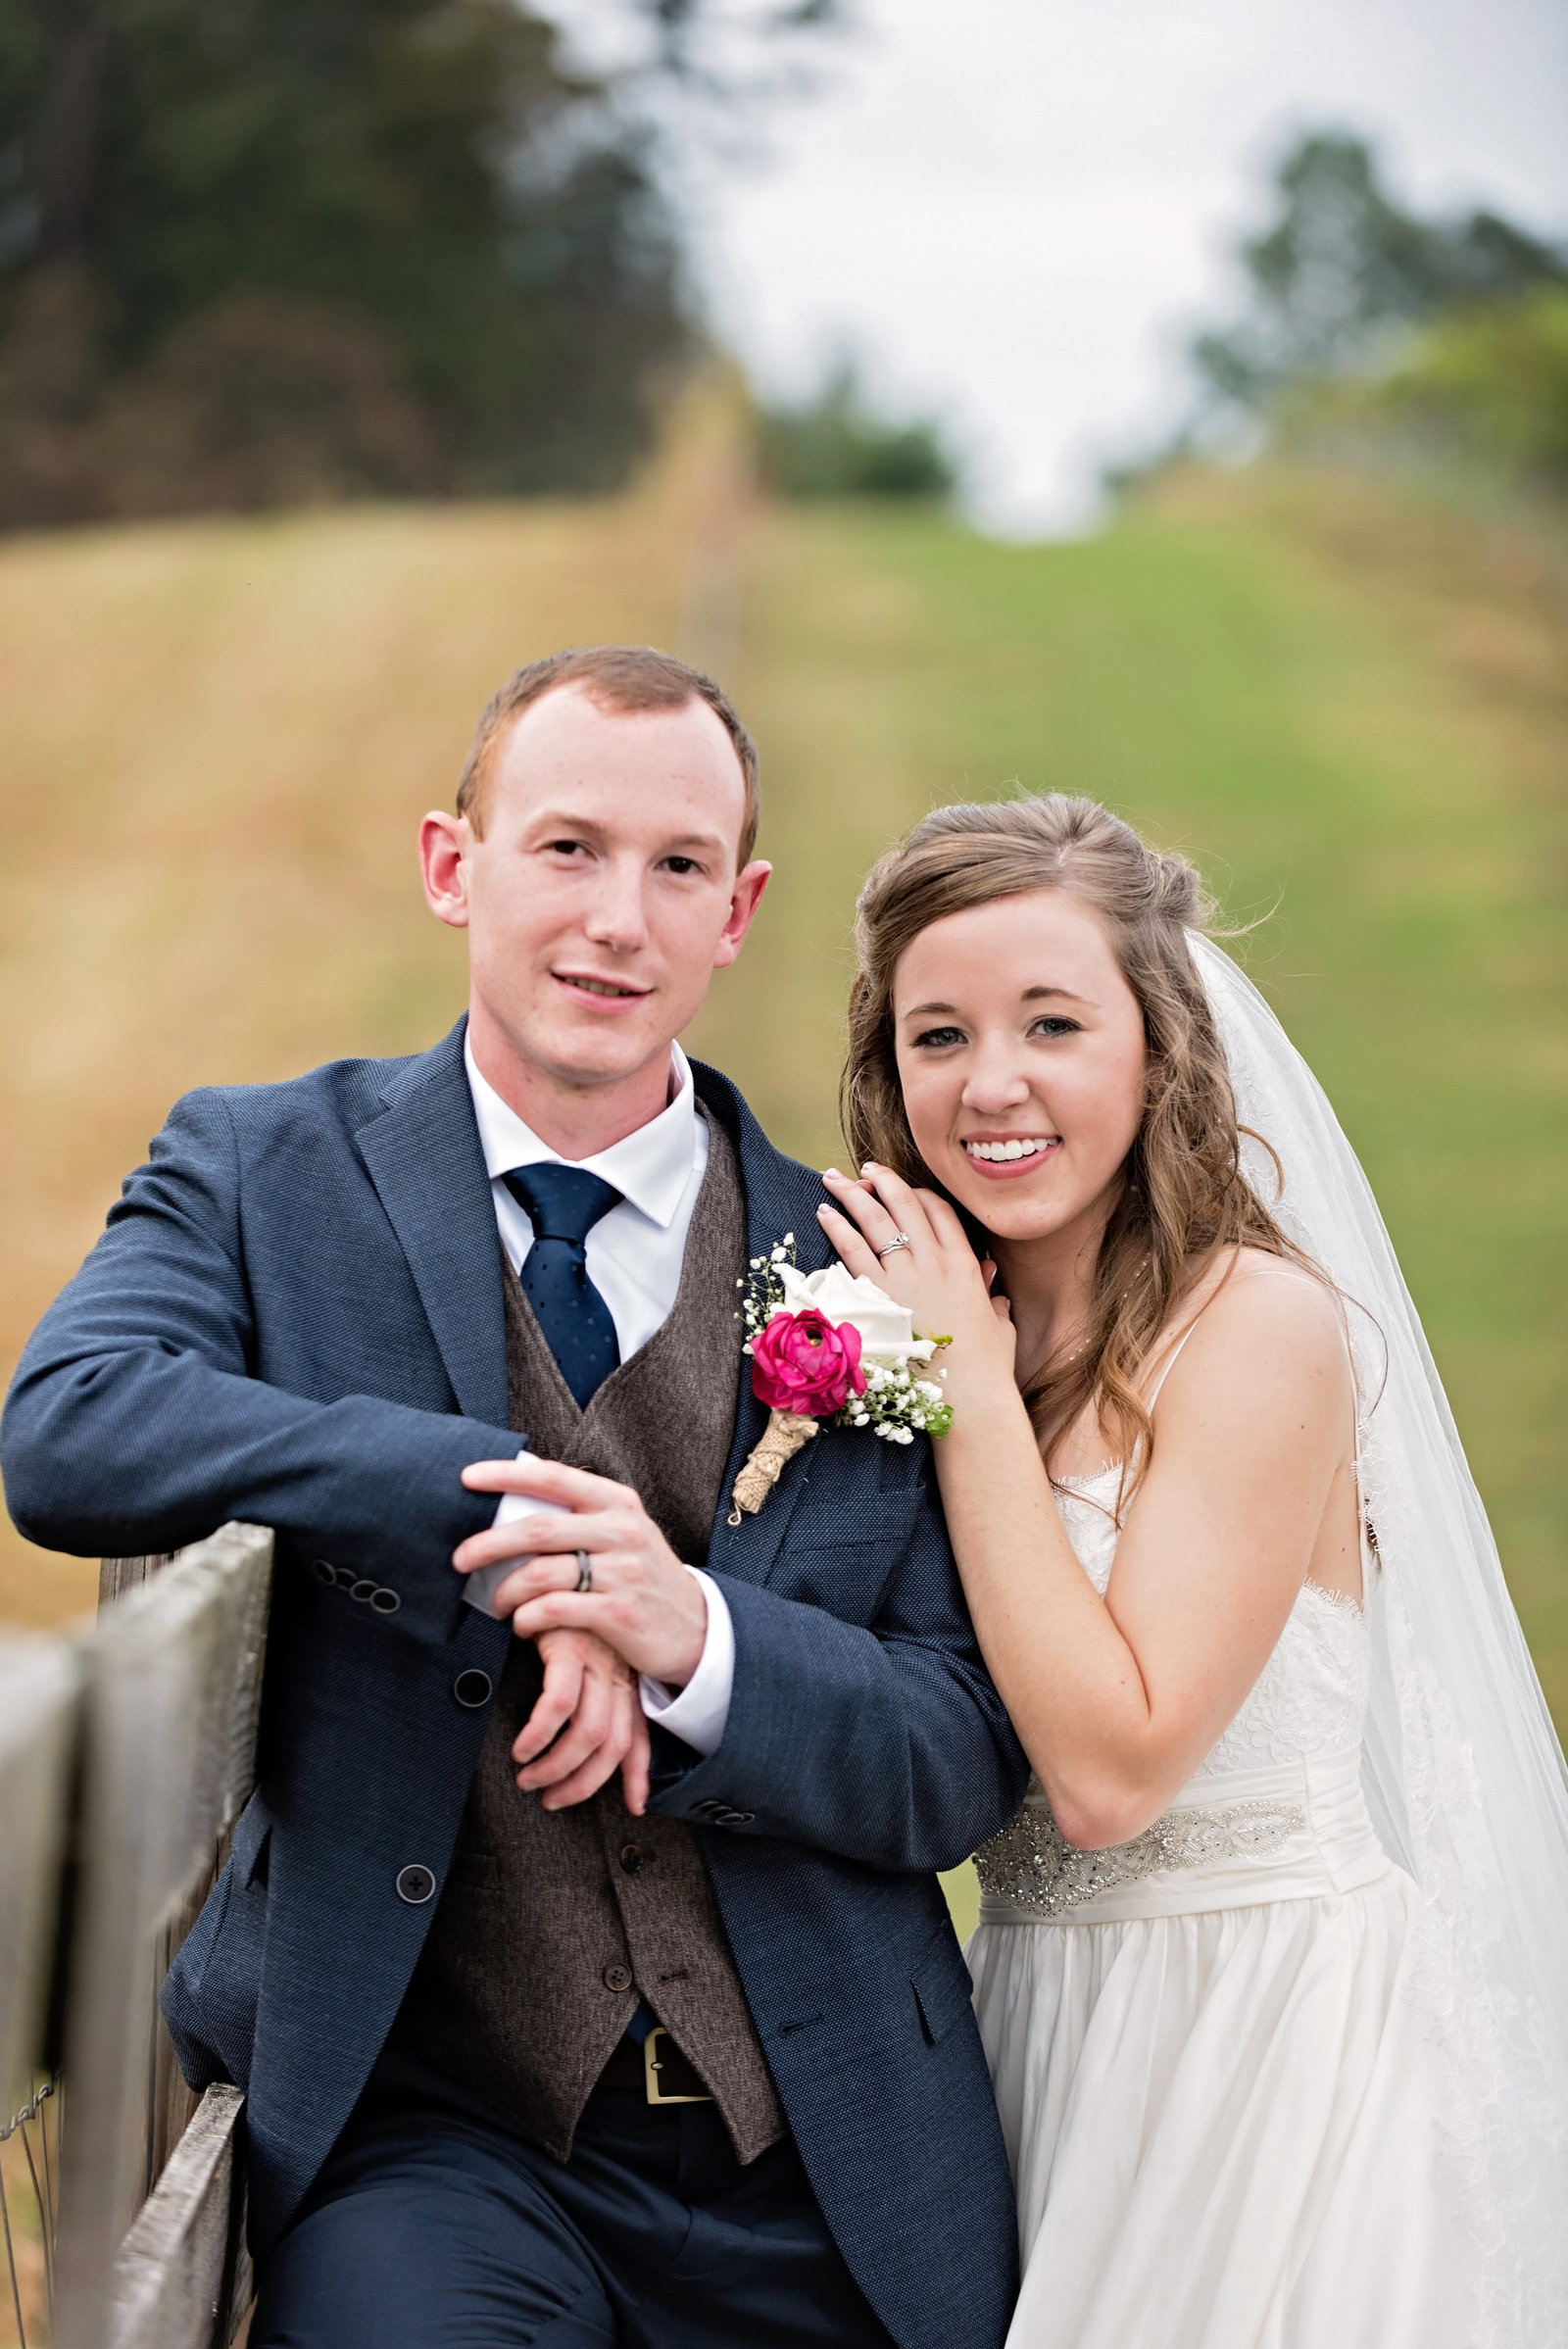 Williams-Southern Wedding_346